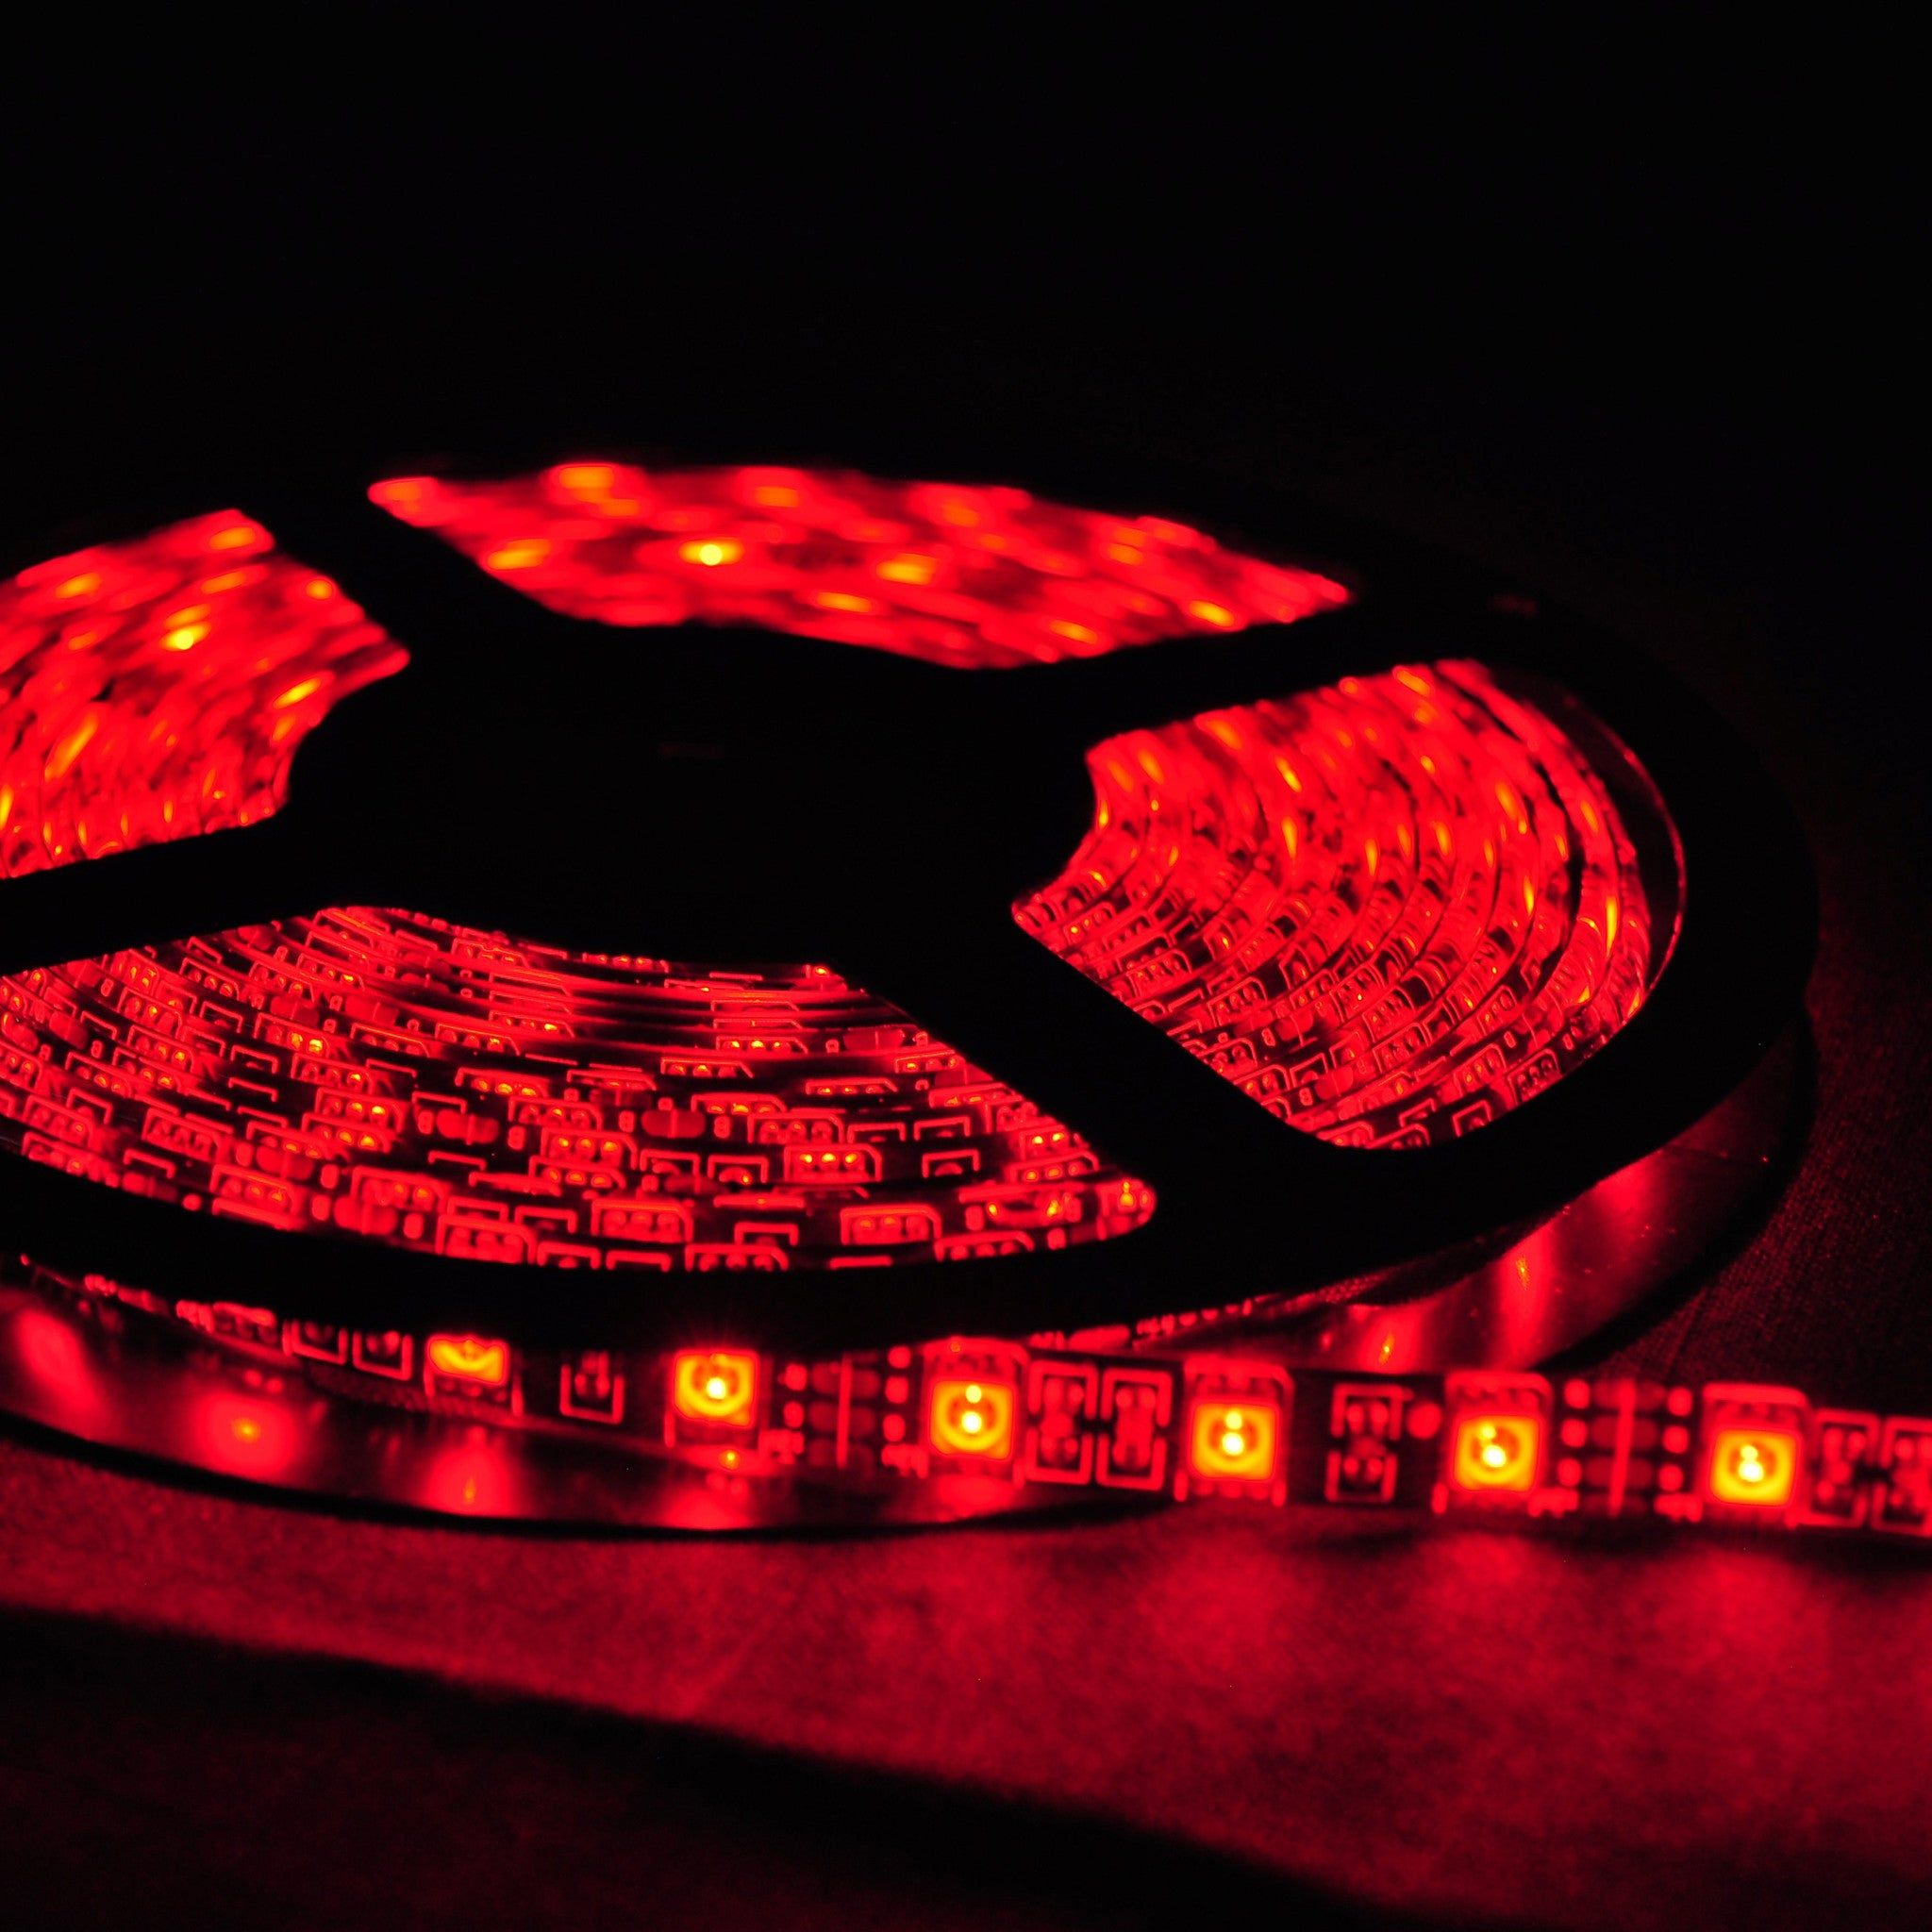 Strip light pack performance led lighting ltd performance led lighting strip light colour changing rgb aloadofball Image collections